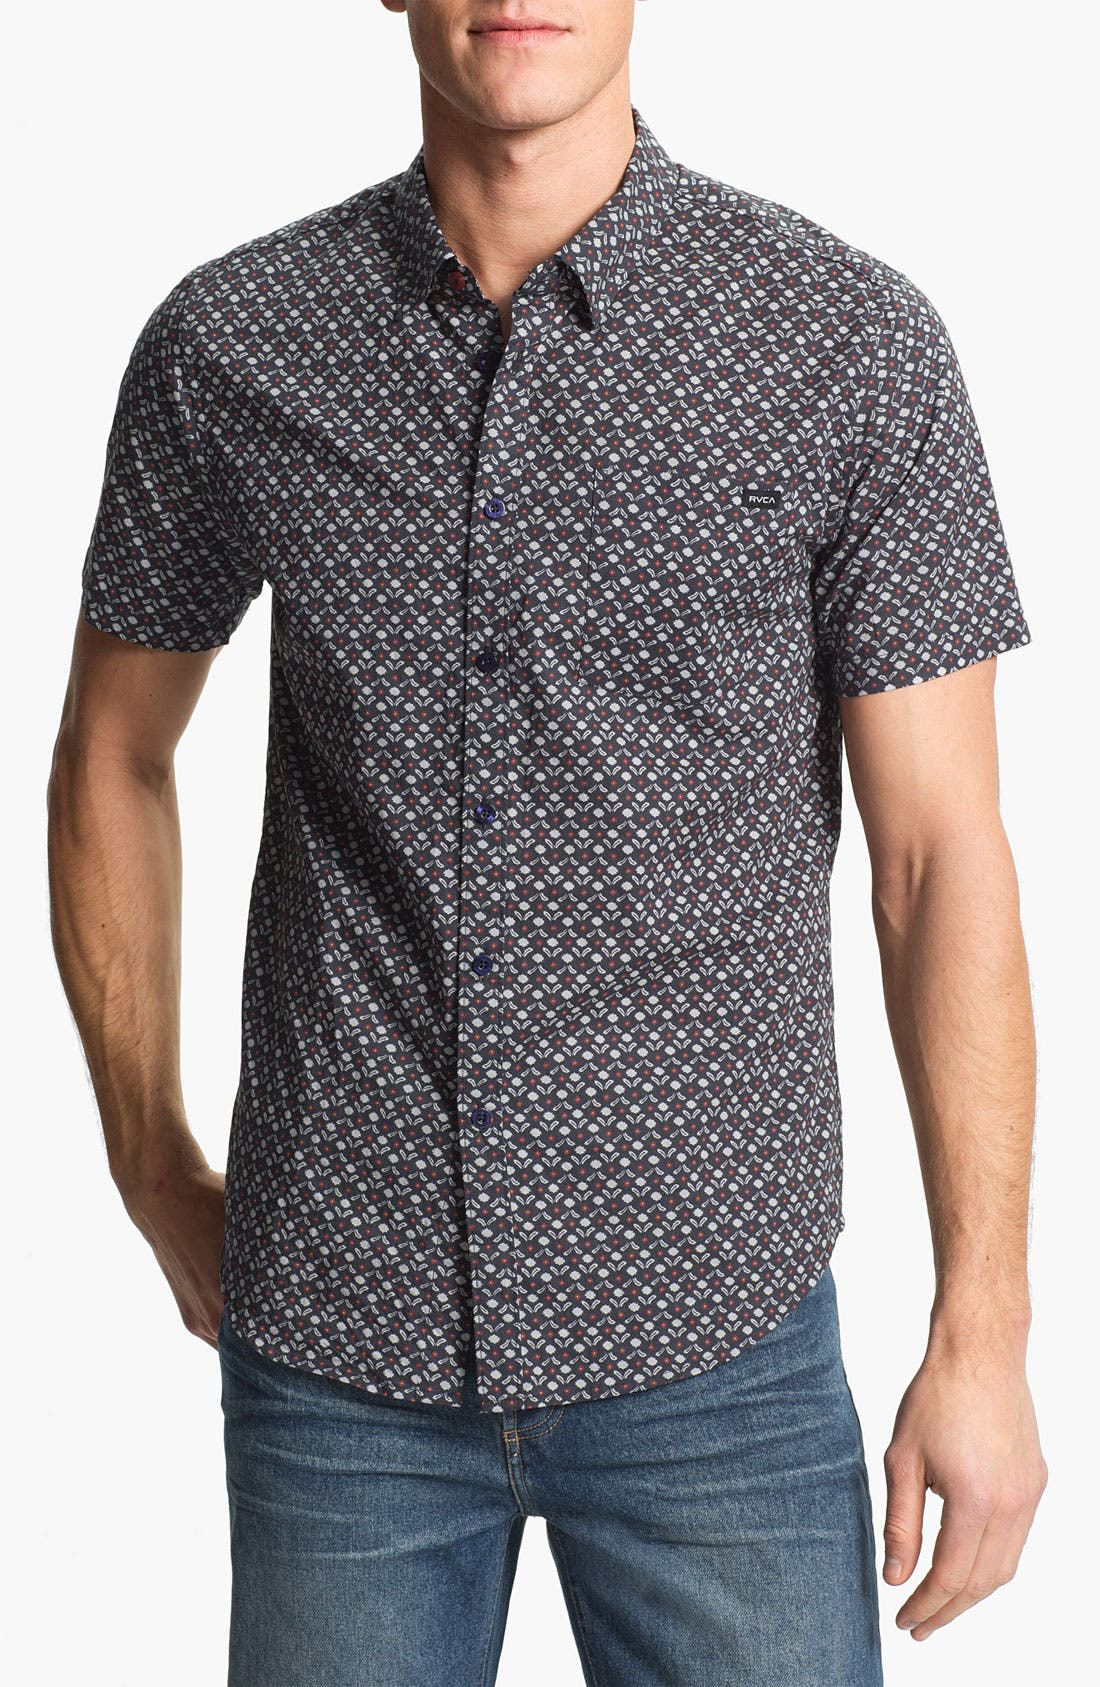 Alternate Image 1 Selected - RVCA 'Dimensions' Print Woven Shirt